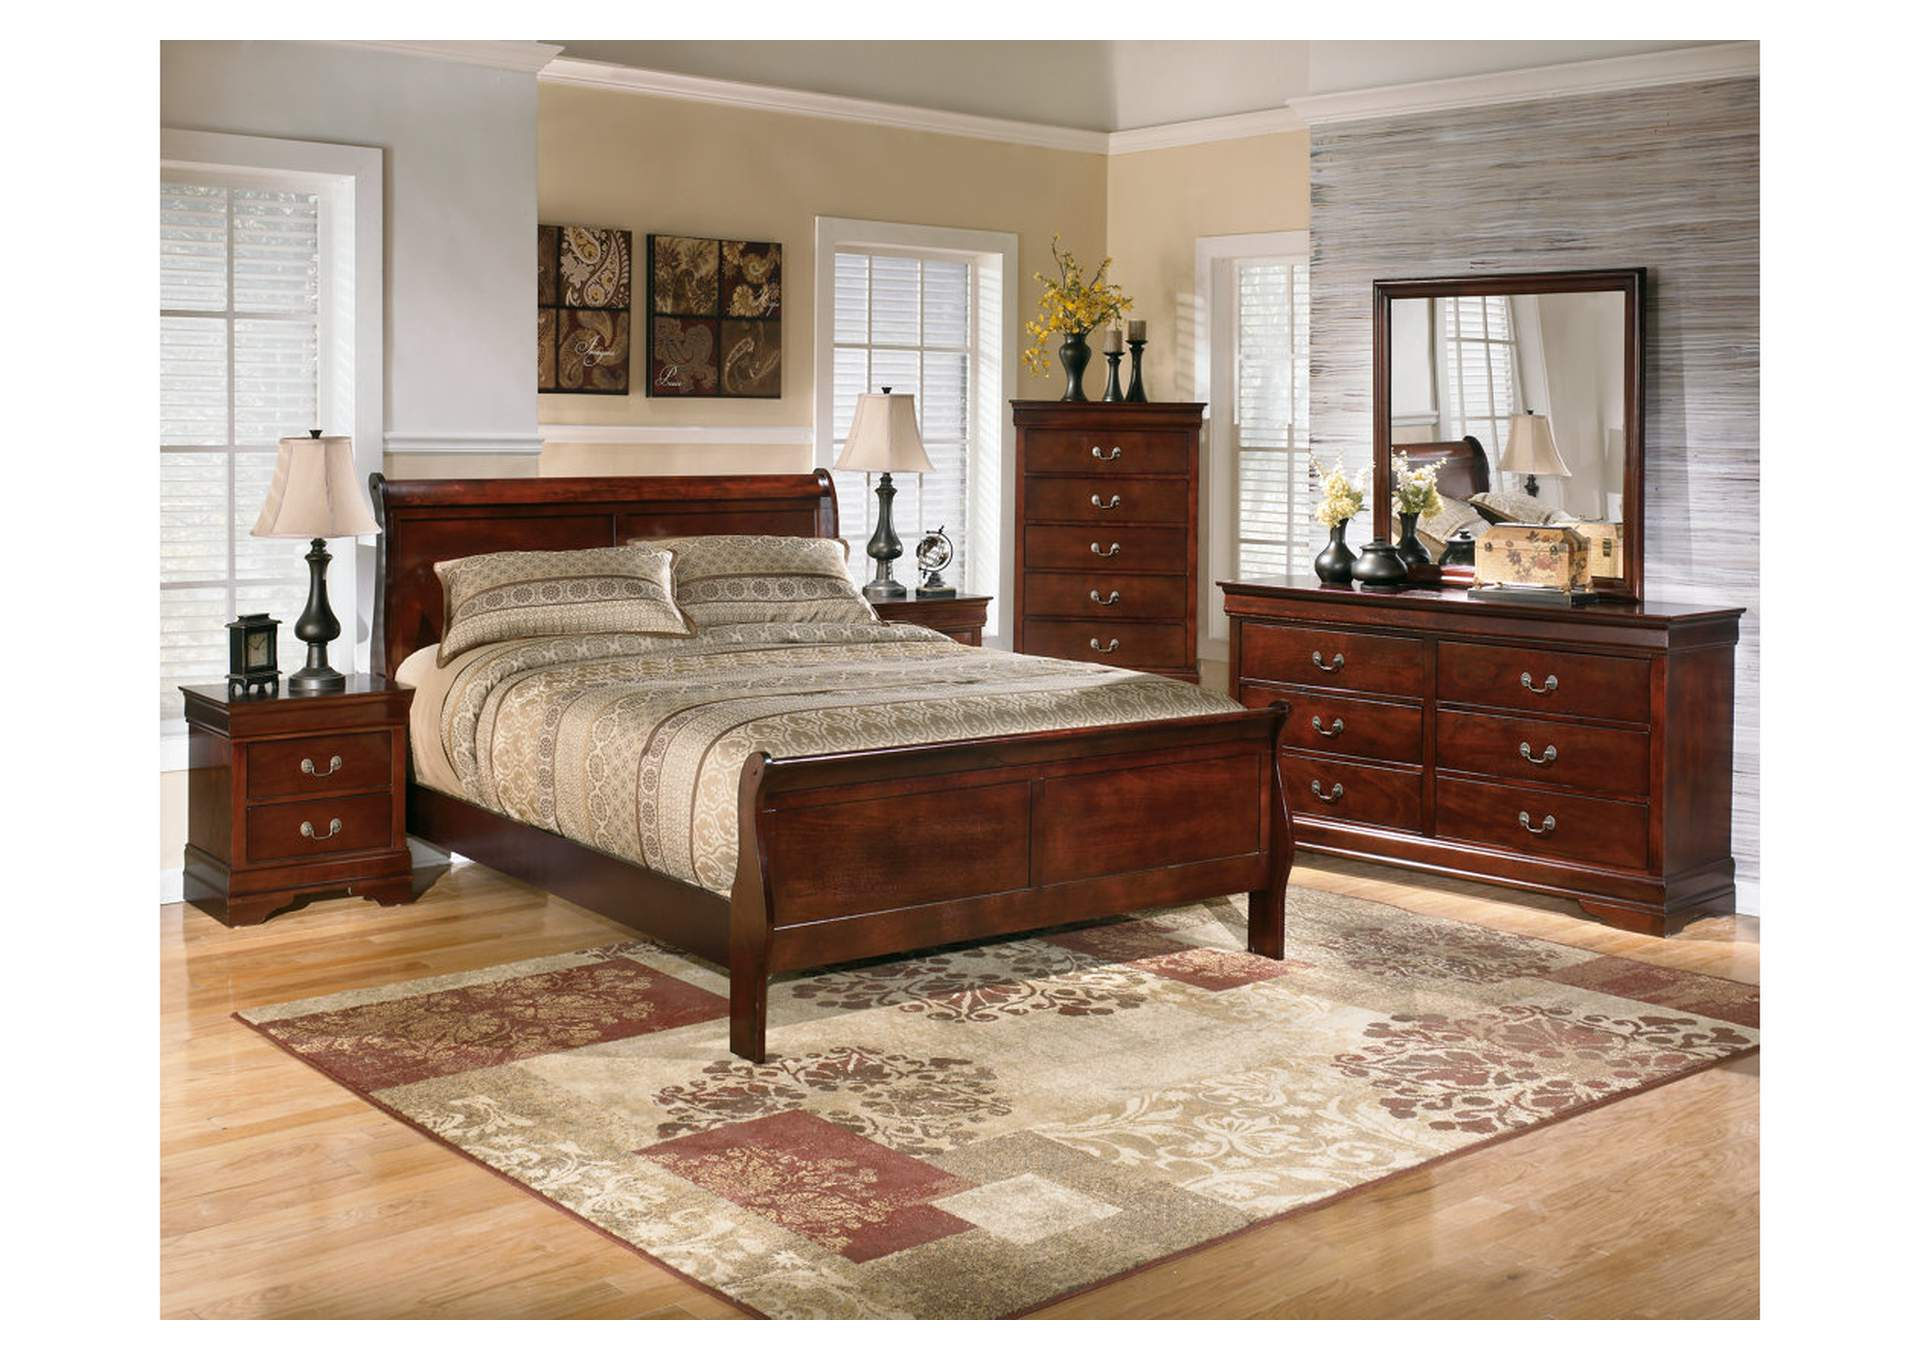 Alisdair Queen Sleigh Bed w/Dresser, Mirror & Nightstand,Signature Design By Ashley